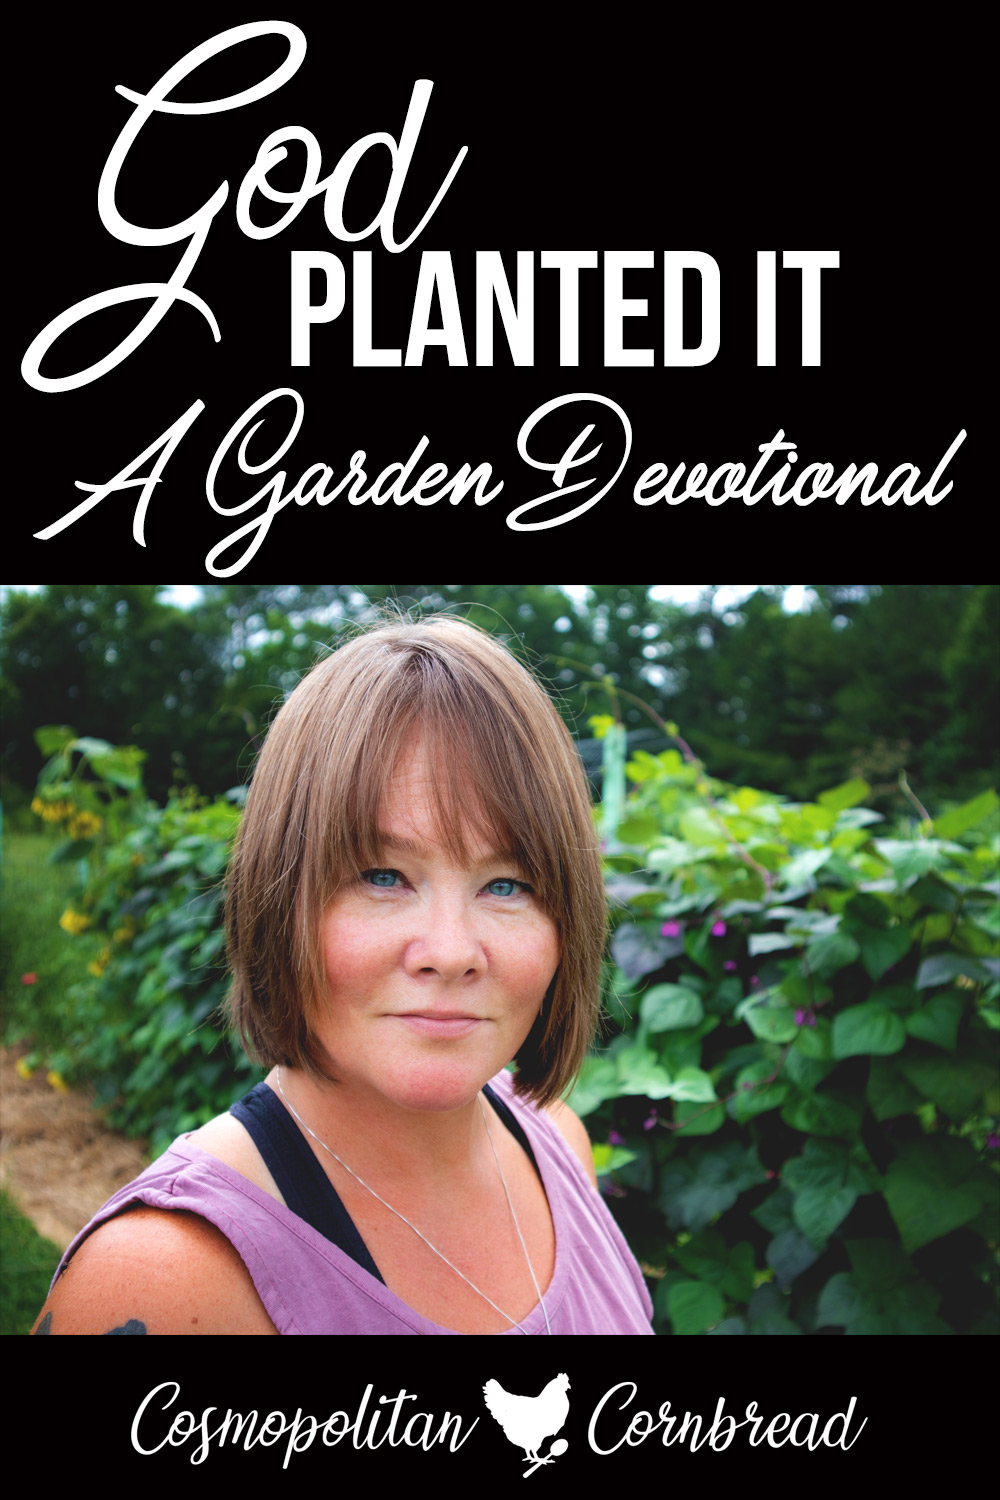 God Planted It - A Garden Devotional | I wasn't planning on doing a devotional...but it just happened. I hope it blesses you!